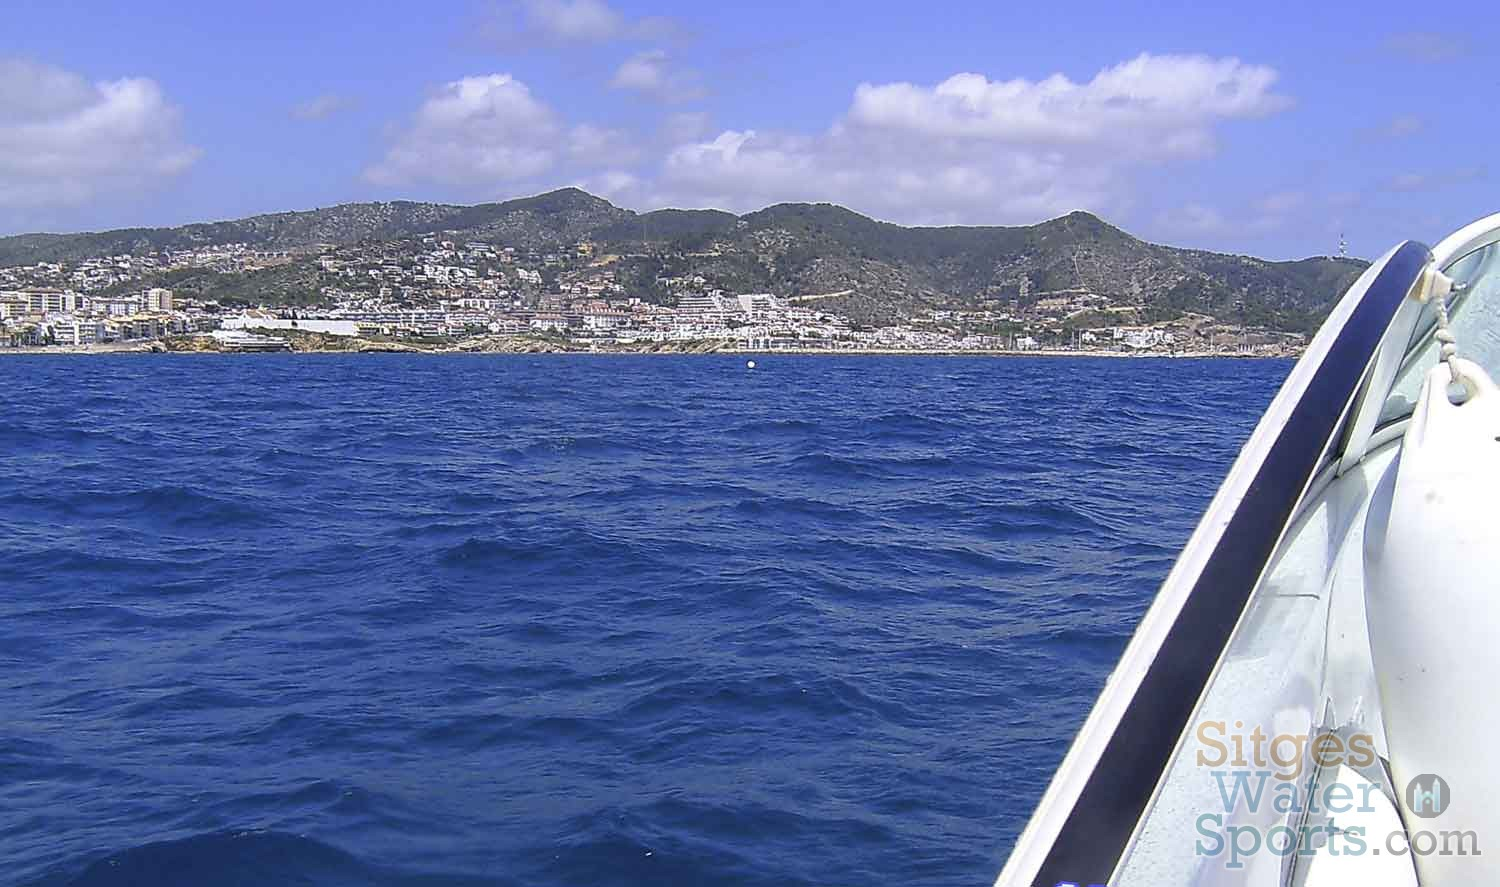 Motorboat & Yacht Courses in Sitges